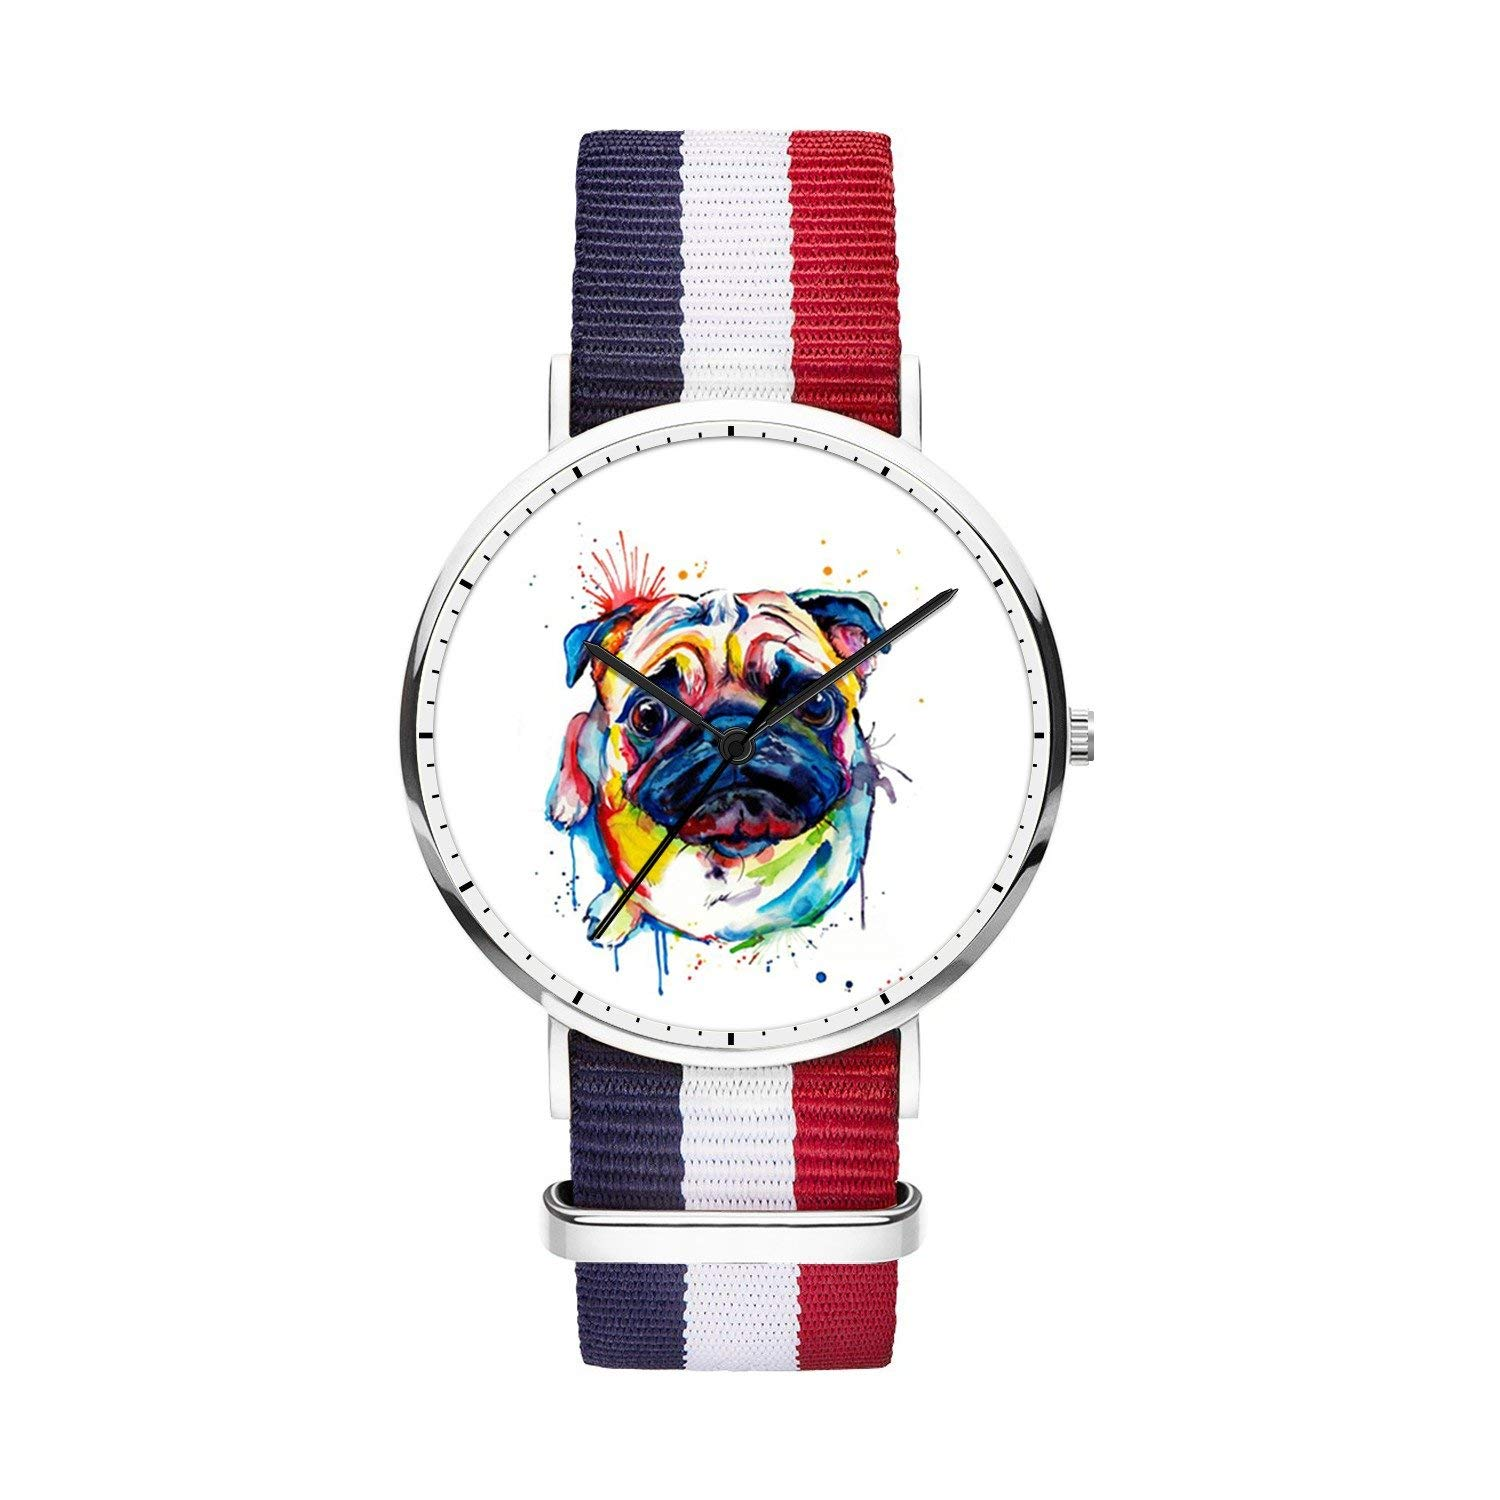 FELOOWSE Girls Watches, Women Watches, Sliver Slim Minimalist Imported Japanese Quartz Practical Waterproof Unique Personalized Youth Fashion Design Cute Watches for Women.- Pug